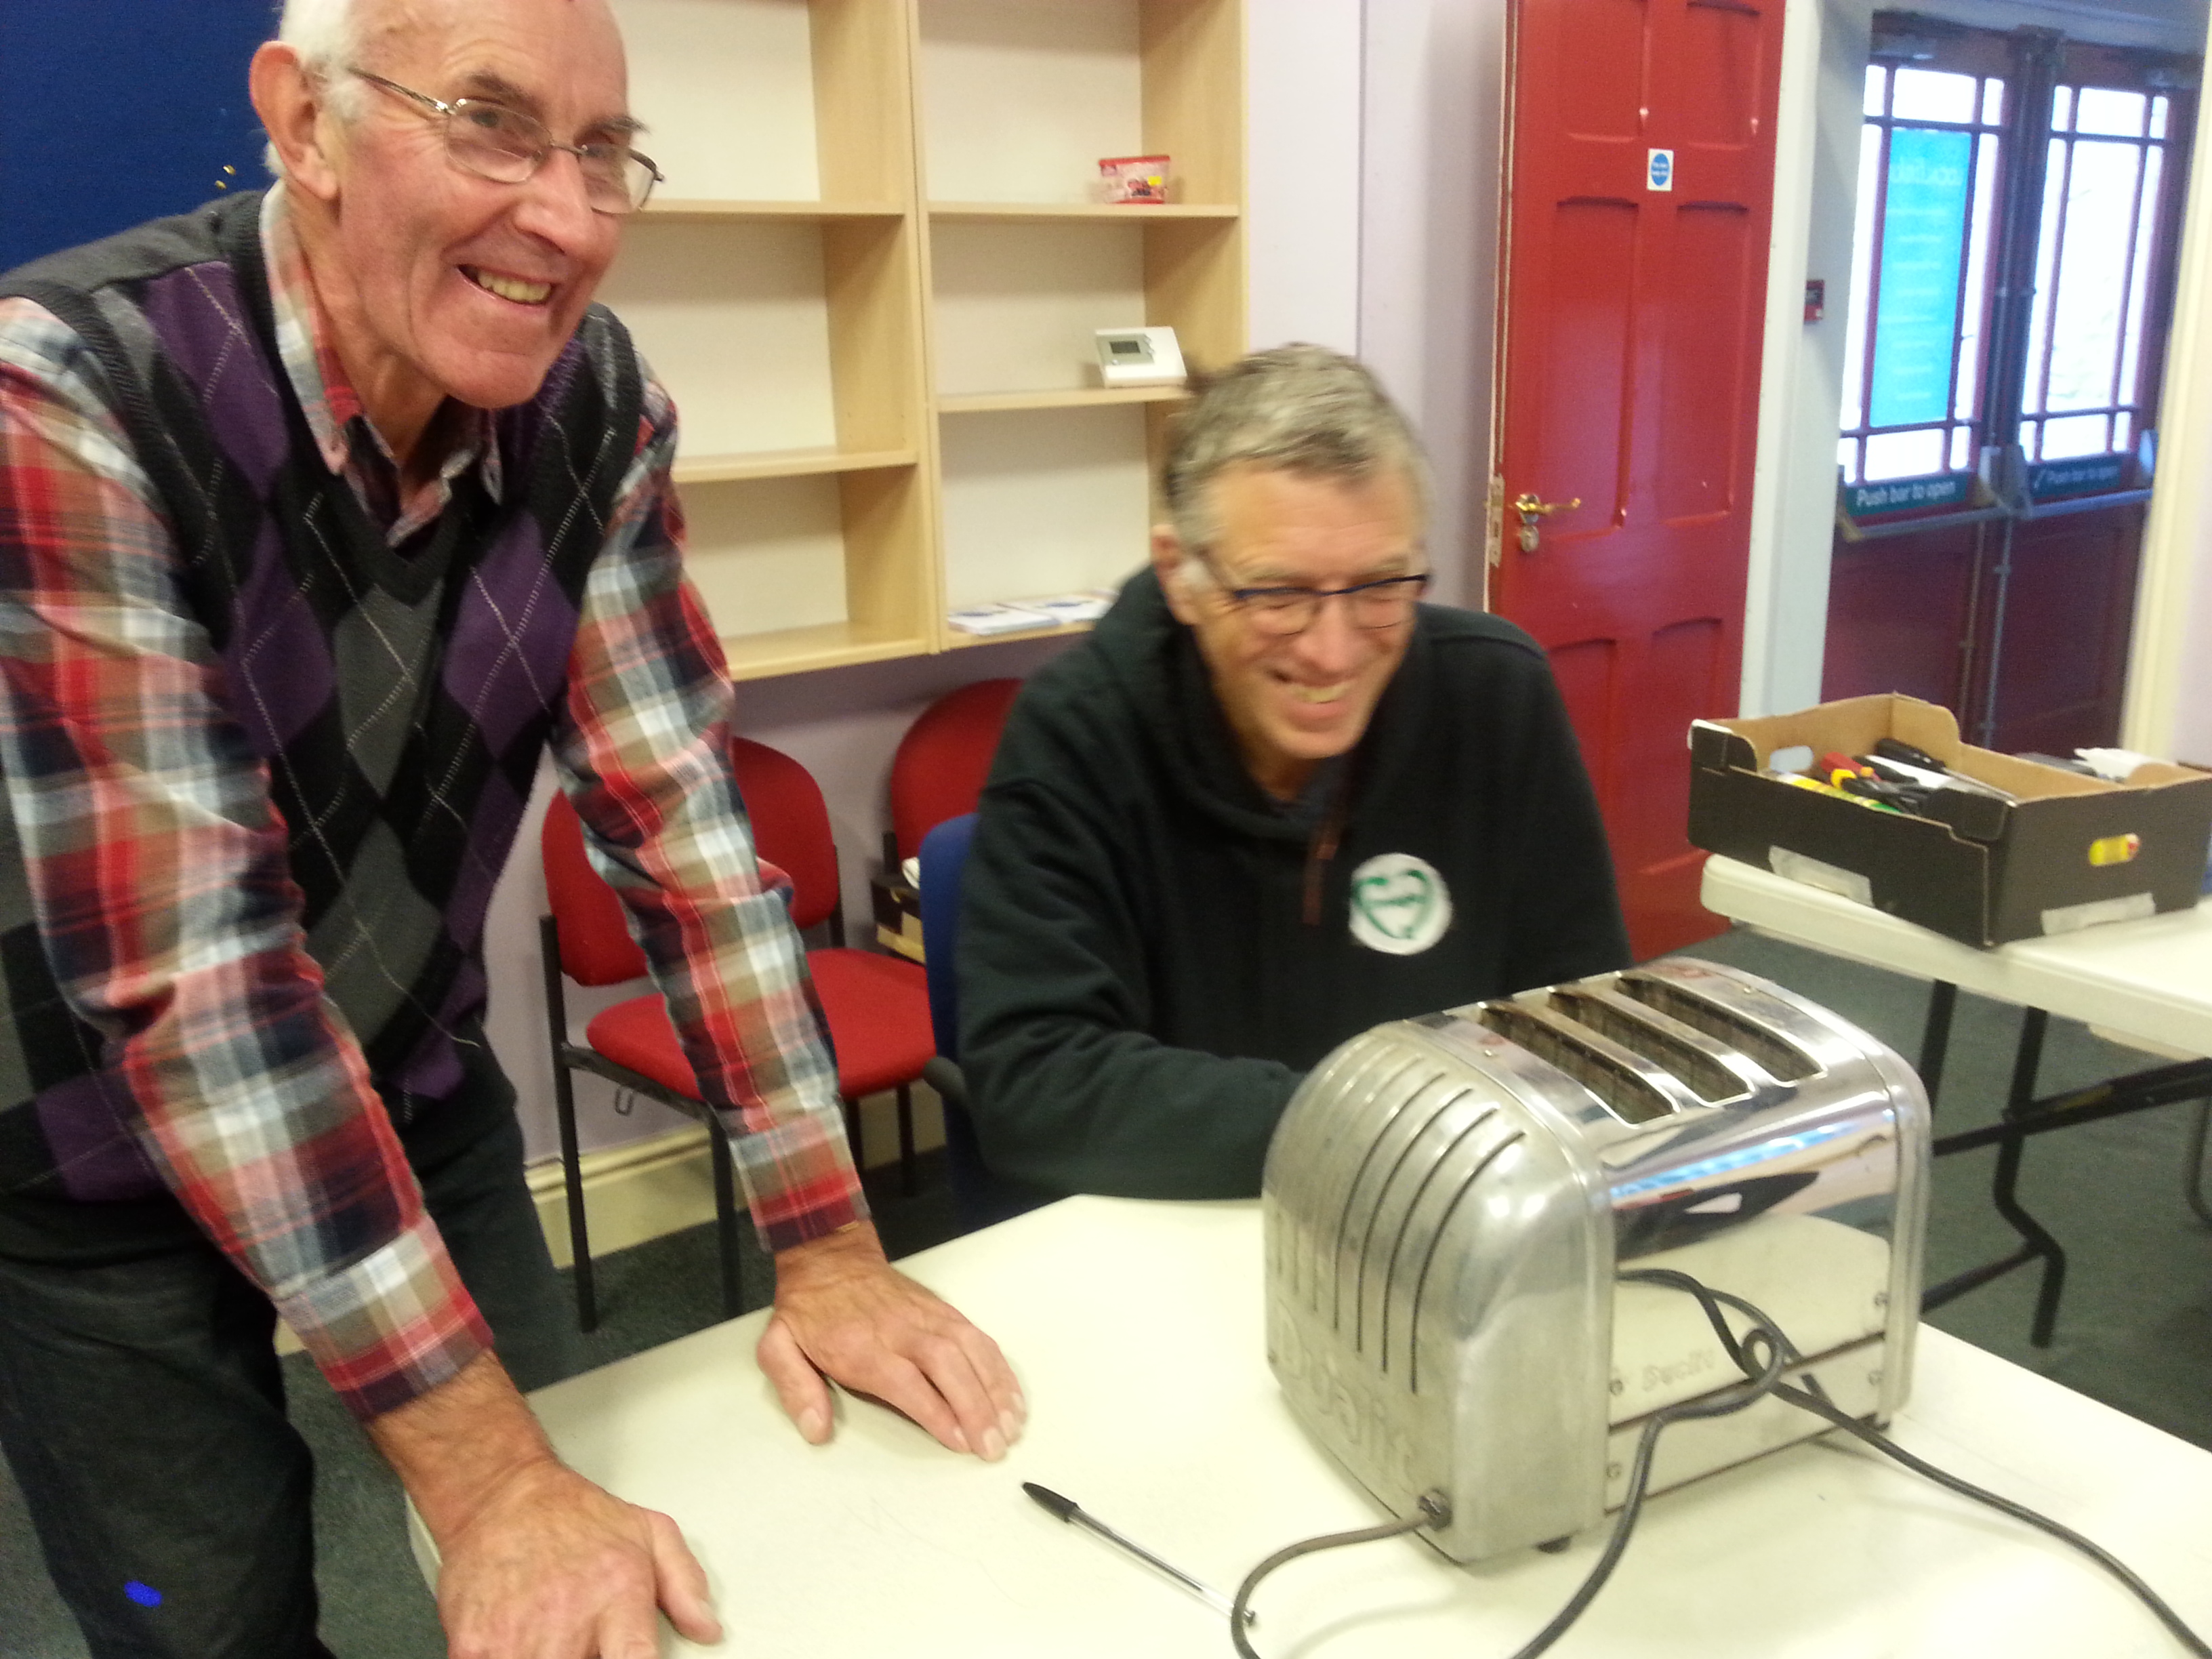 Volunteer Chris Cant fixing a toaster at Alston Moor Repair Cafe 23 Sept 2017 by CAfS